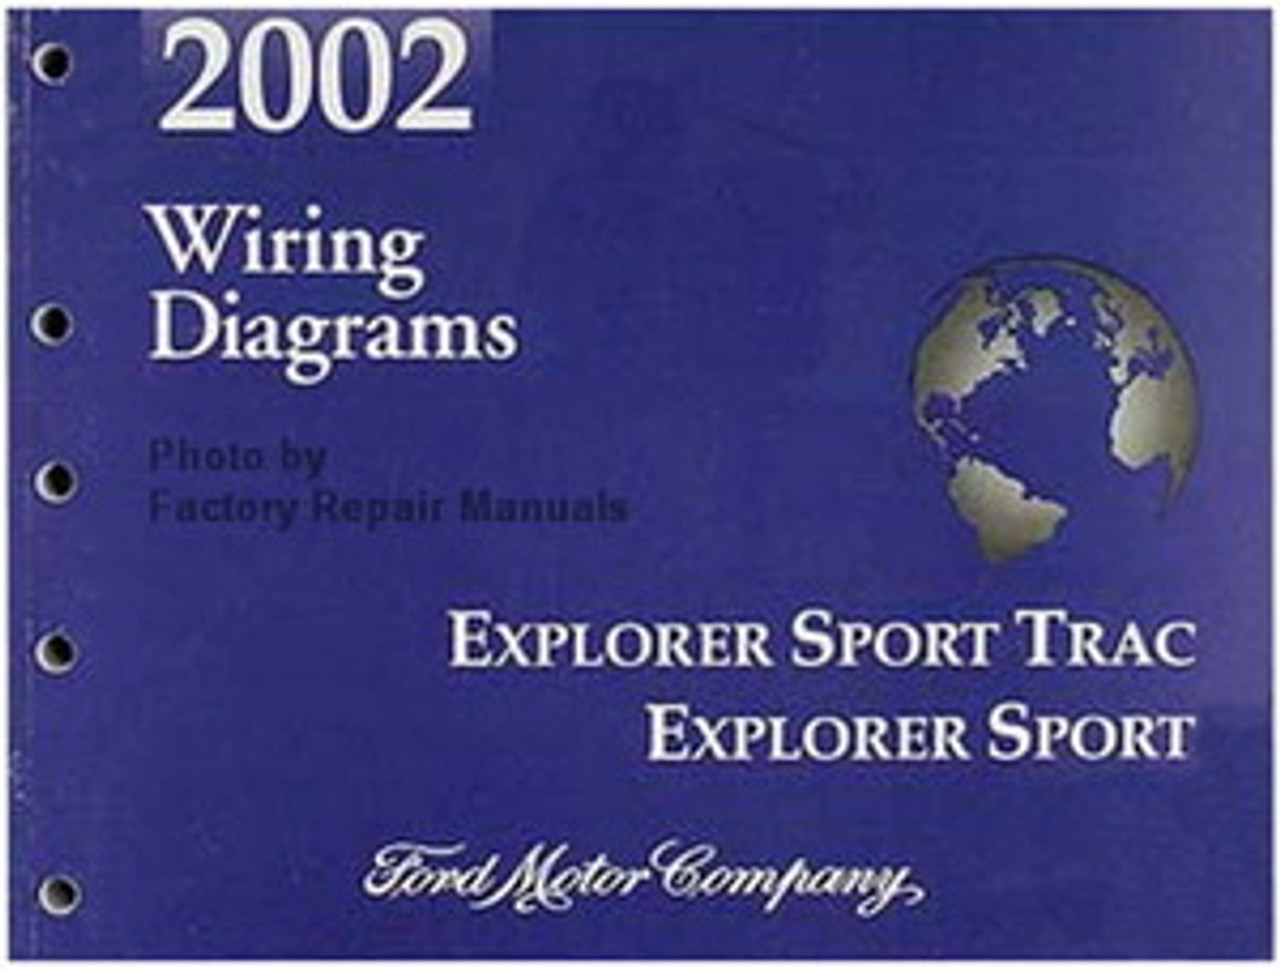 2002 Ford Explorer Sport Trac And Explorer Sport Wiring Diagrams Manual